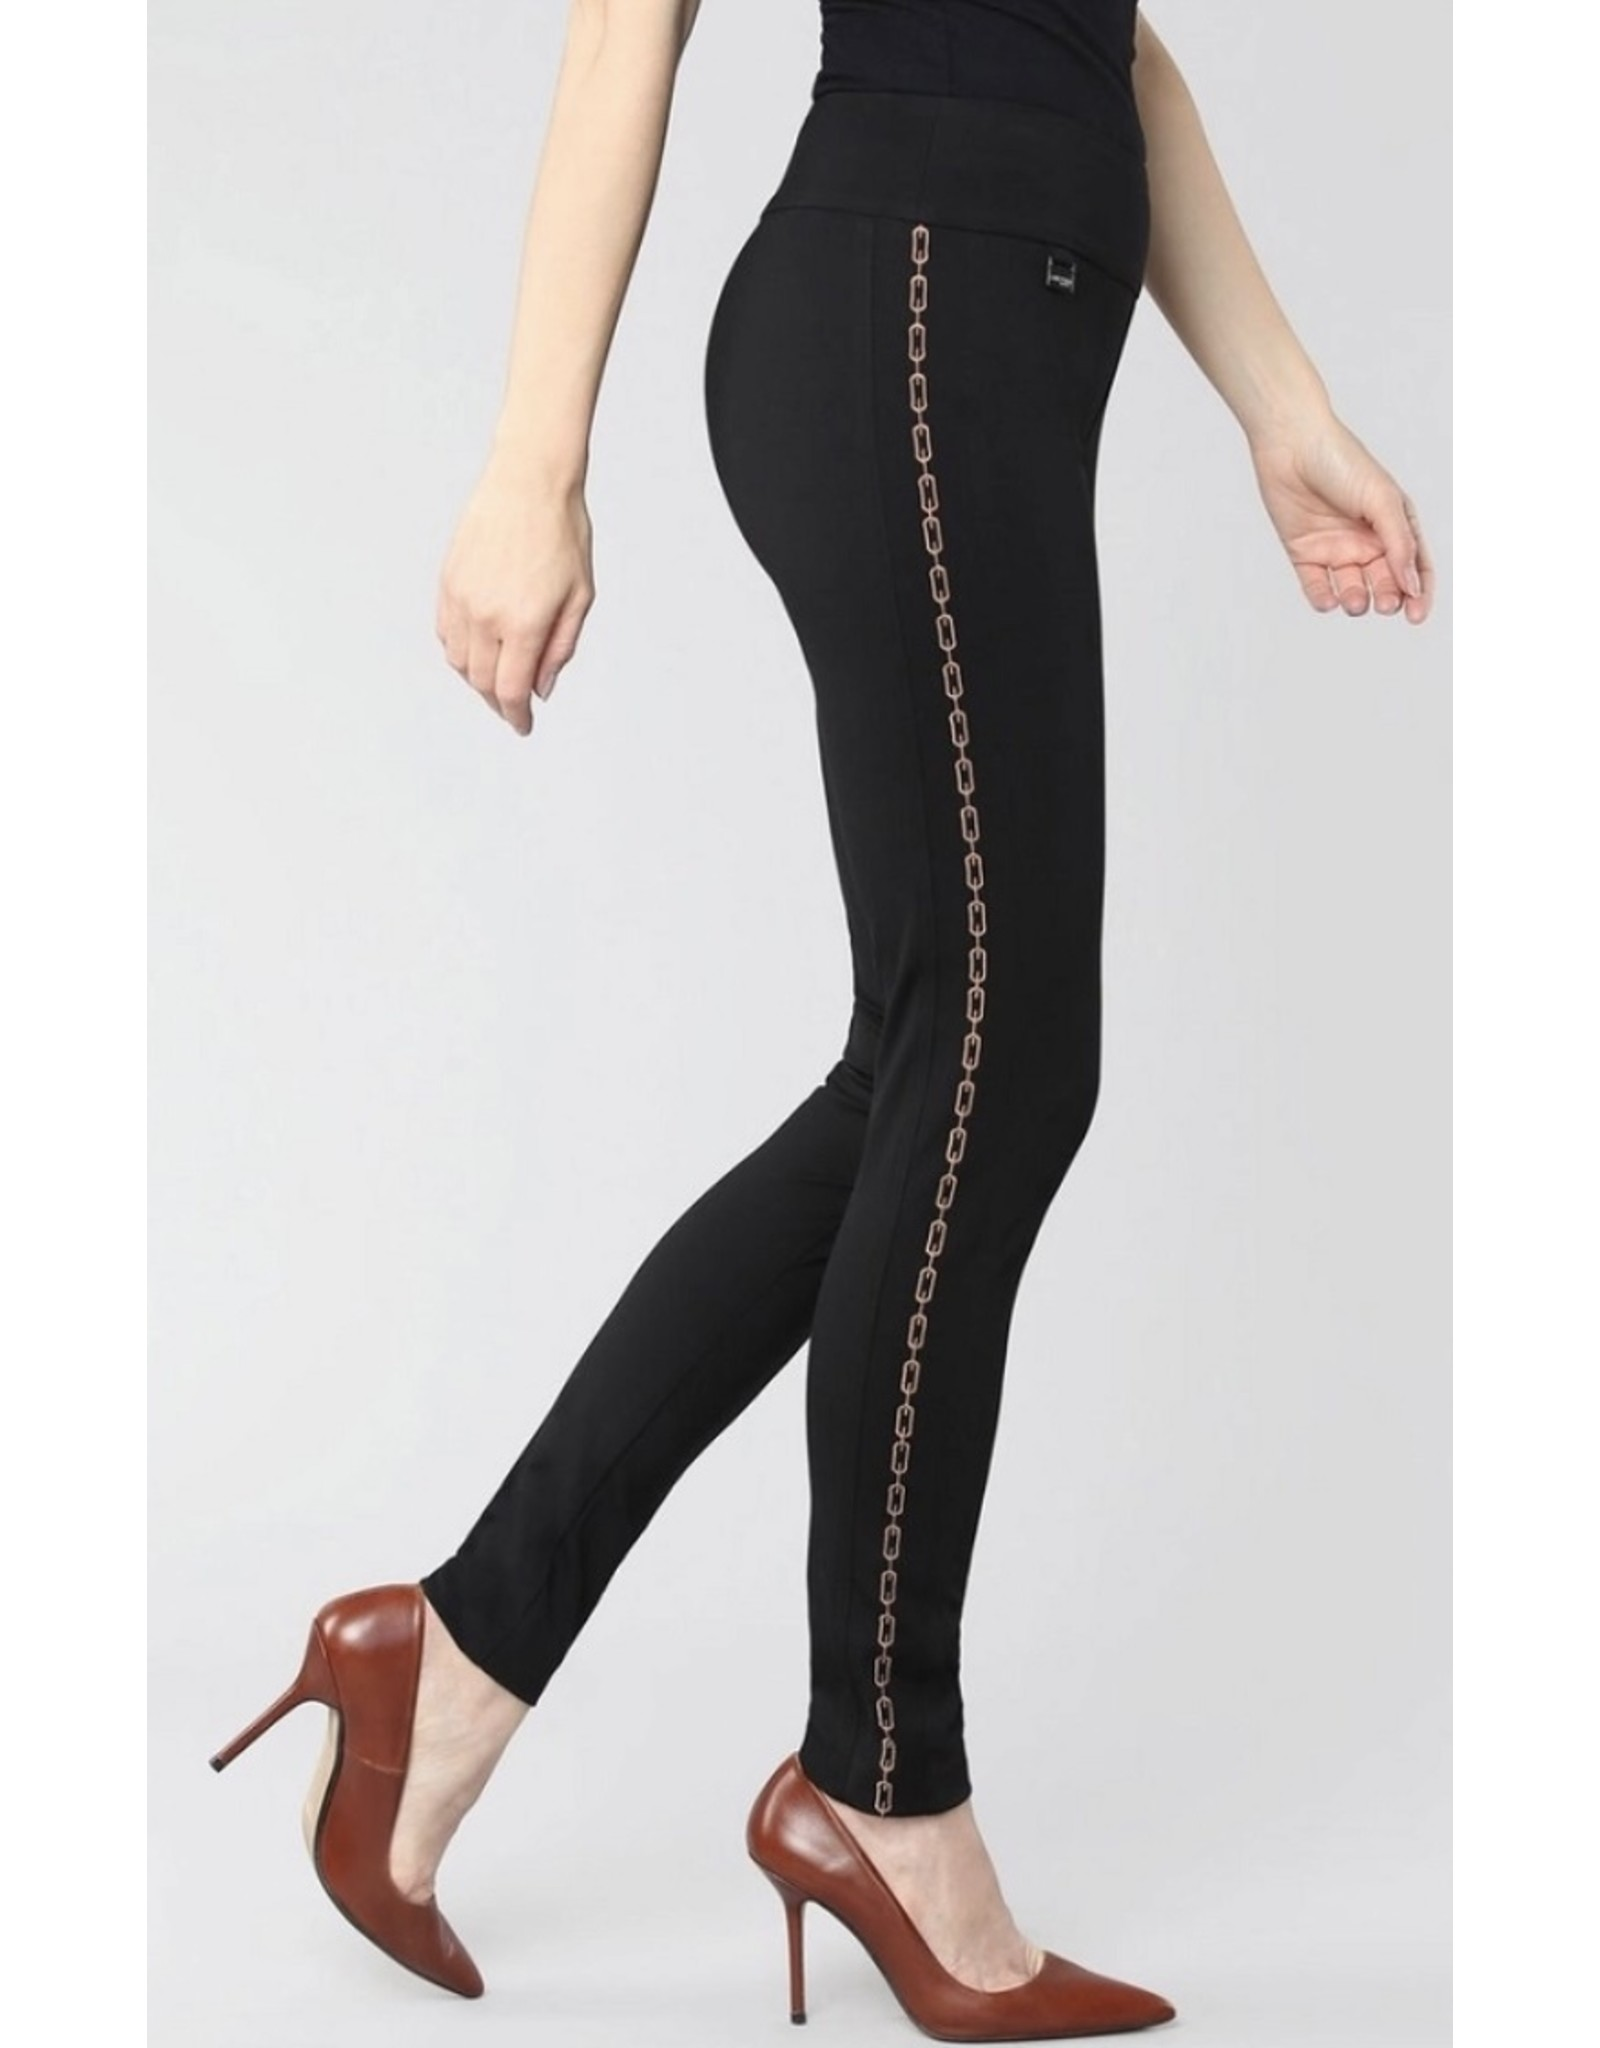 lisette Lisette Pull on Chain Link Embroidery Ankle